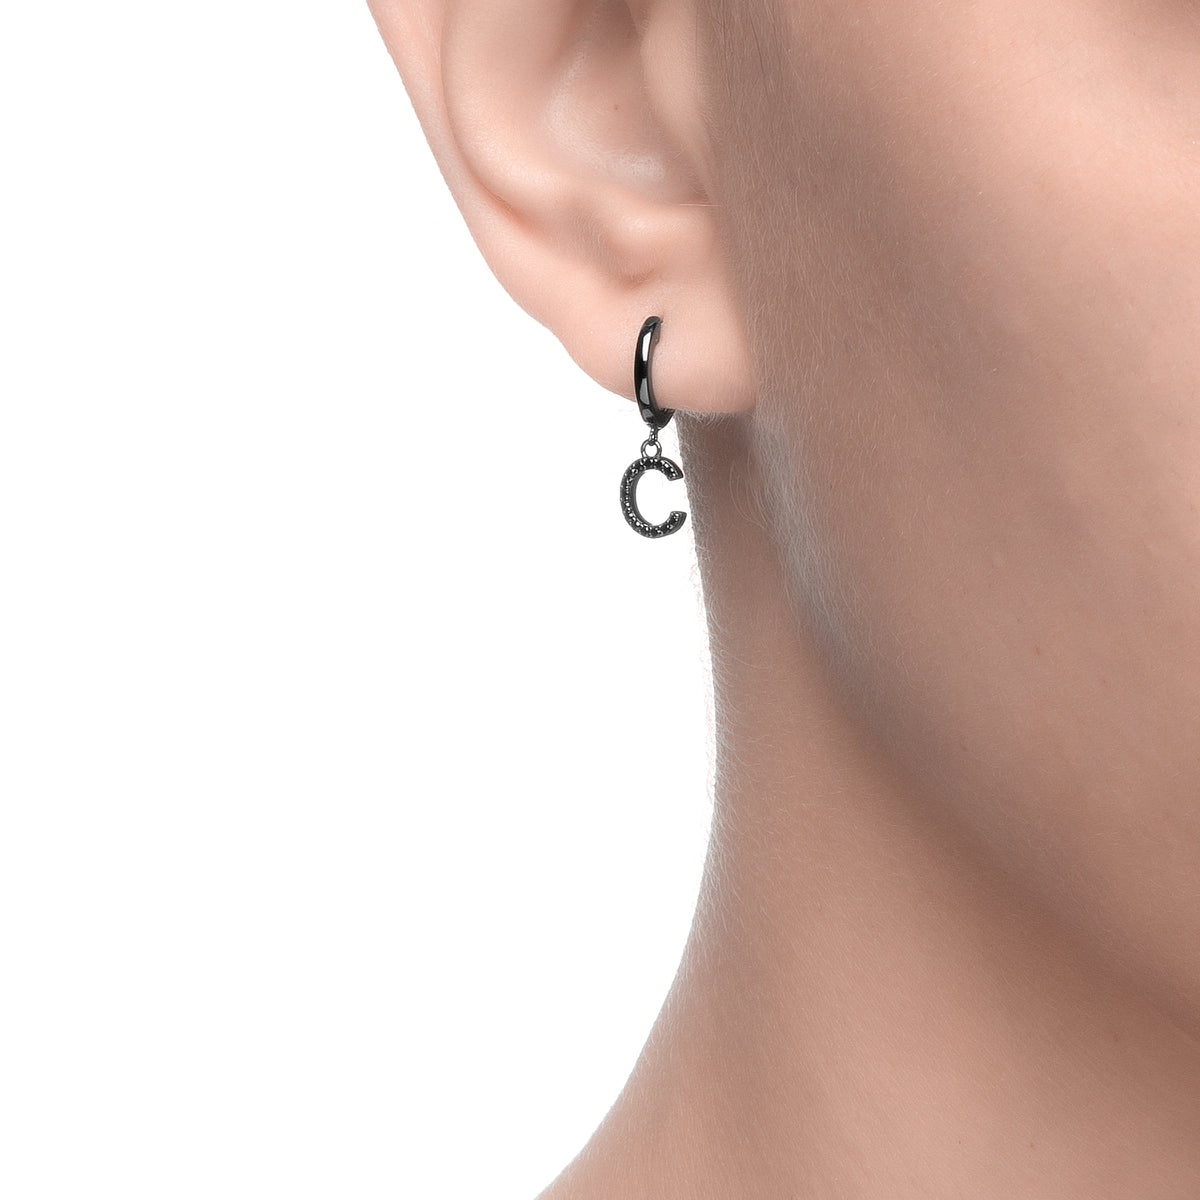 Magna | C Letter Single Earring | Black CZ | Black Rhodium Plated 925 Silver